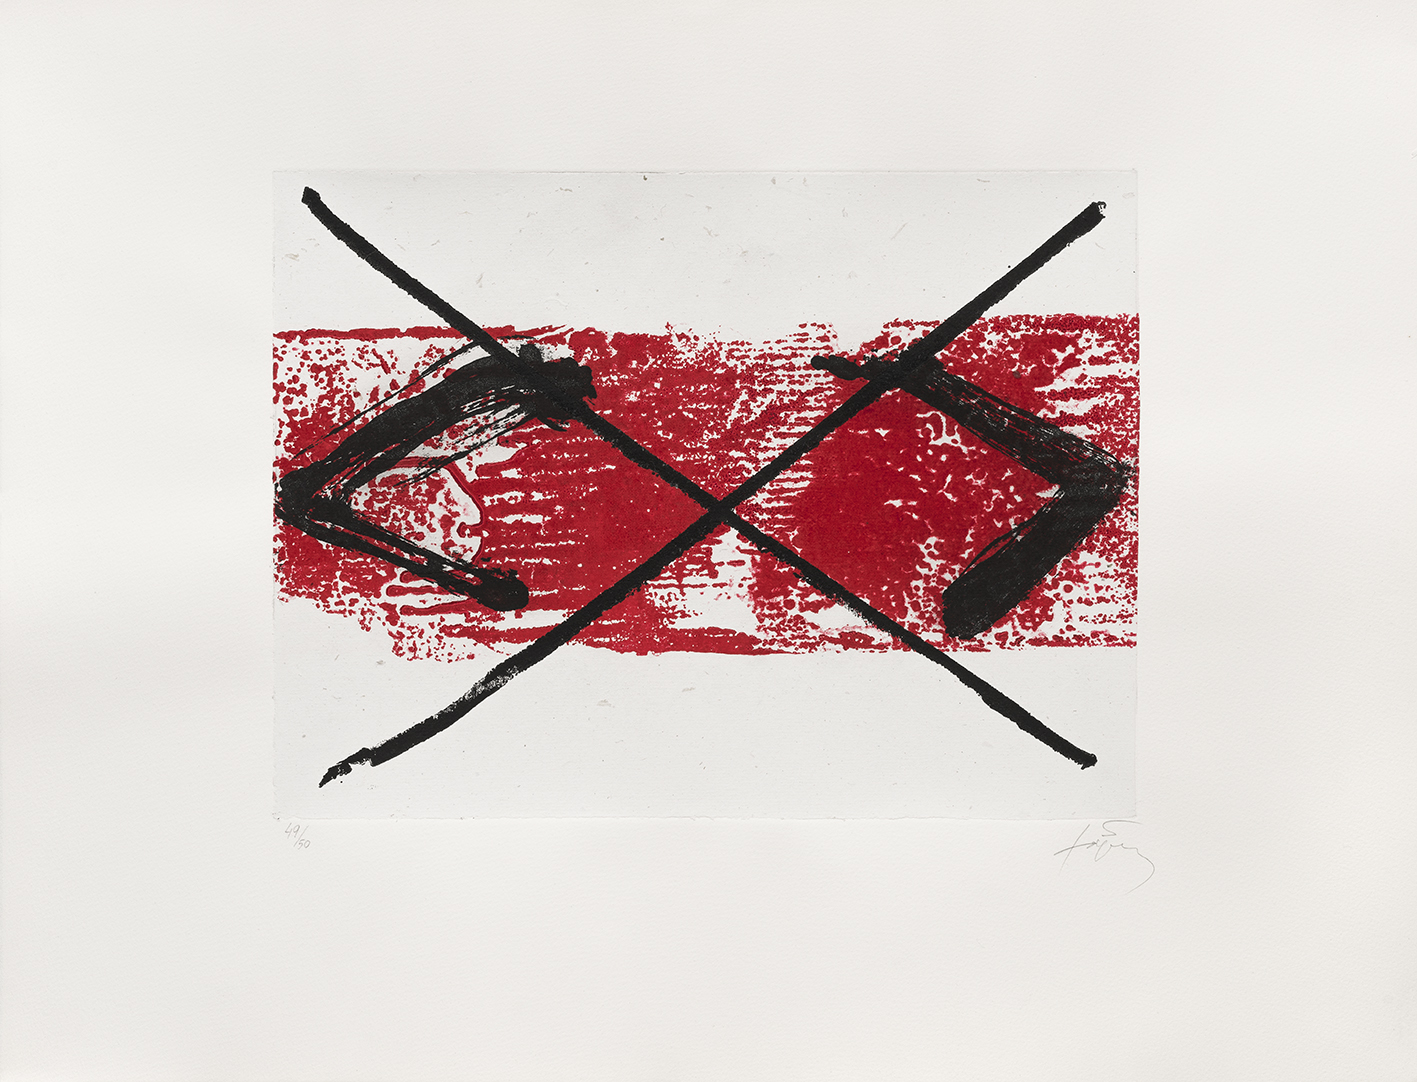 estampe Bande rouge Antoni Tàpies